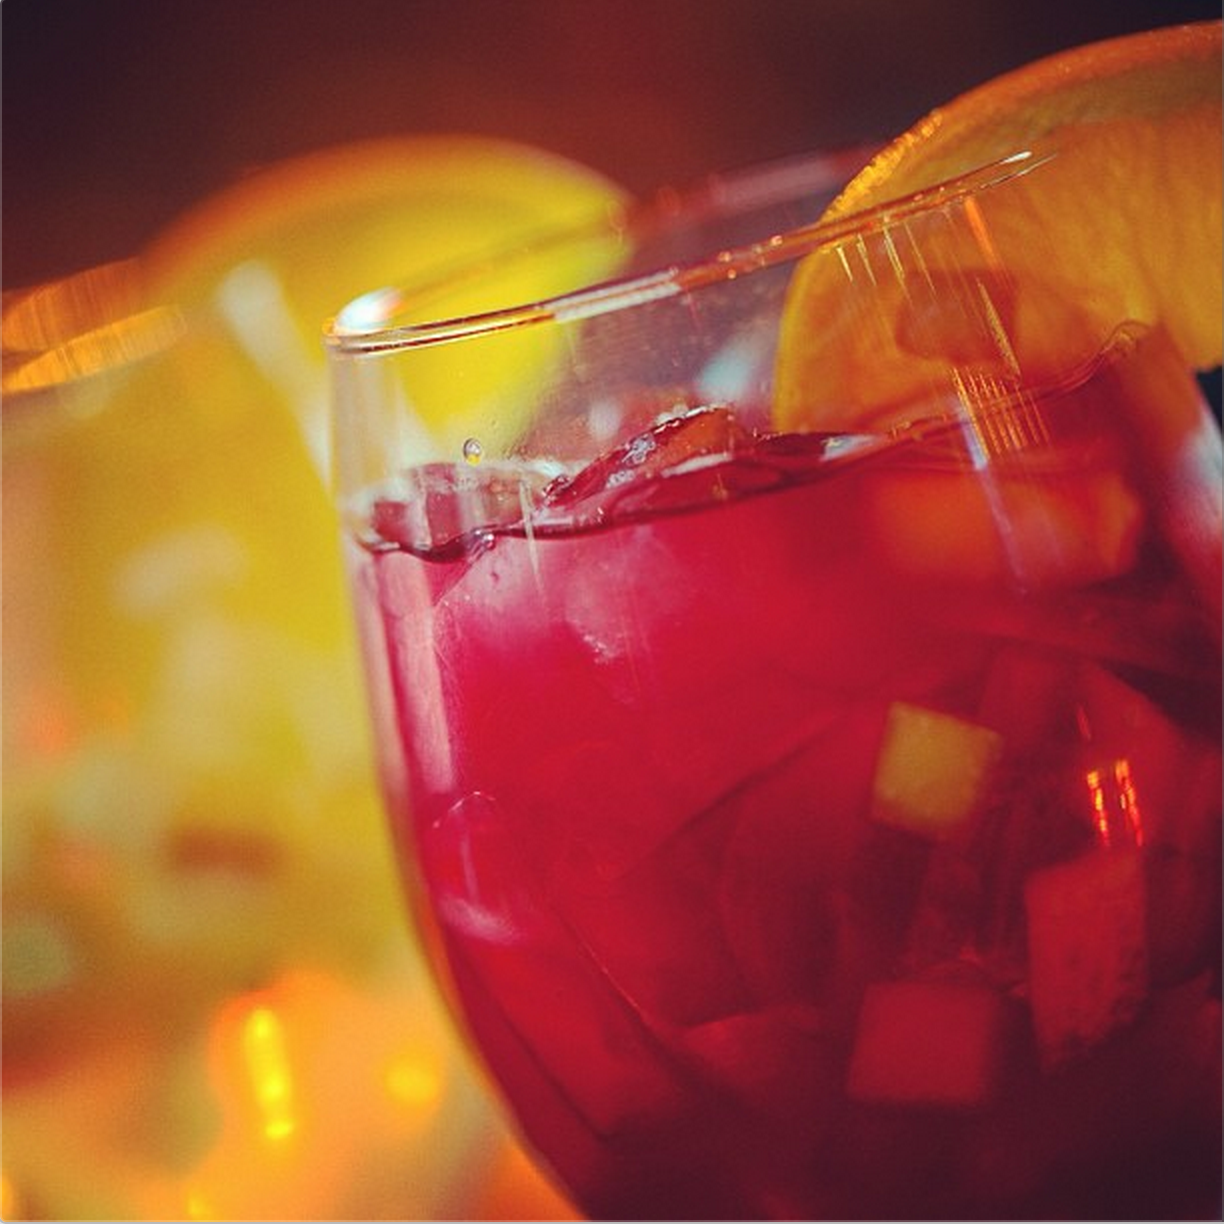 Sip on some Sangria… #cocktail #sangria